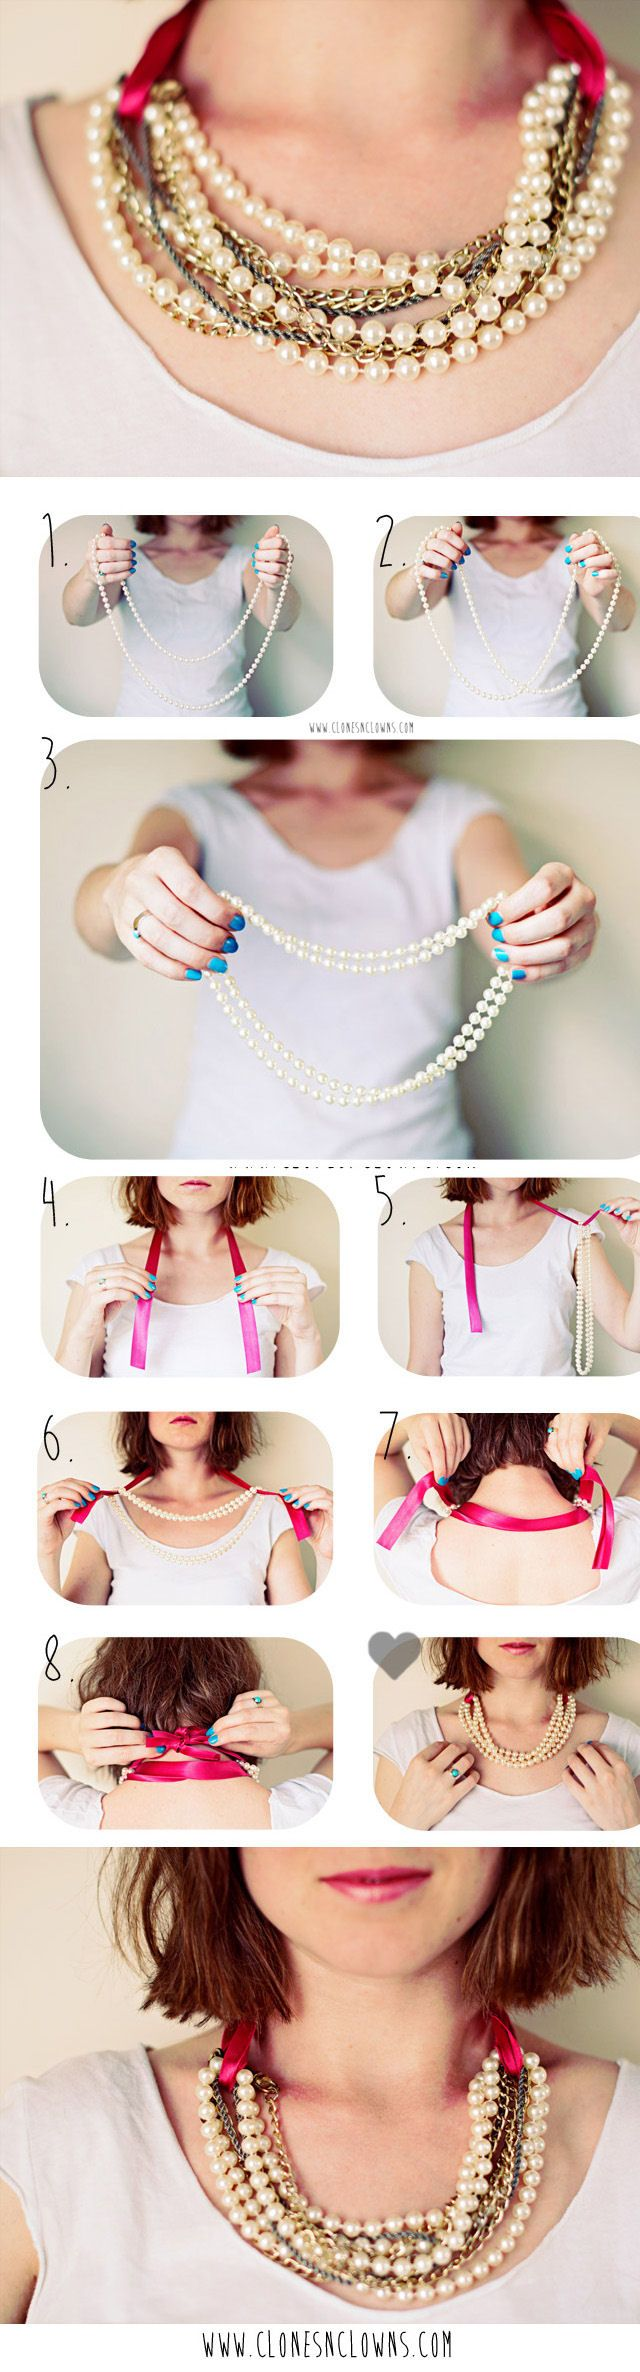 DIY Pearl Necklace In 3 Minutes diy craft crafts craft ideas easy crafts diy ideas crafty easy diy diy jewelry craft necklace diy necklace jewelry diy fashion crafts